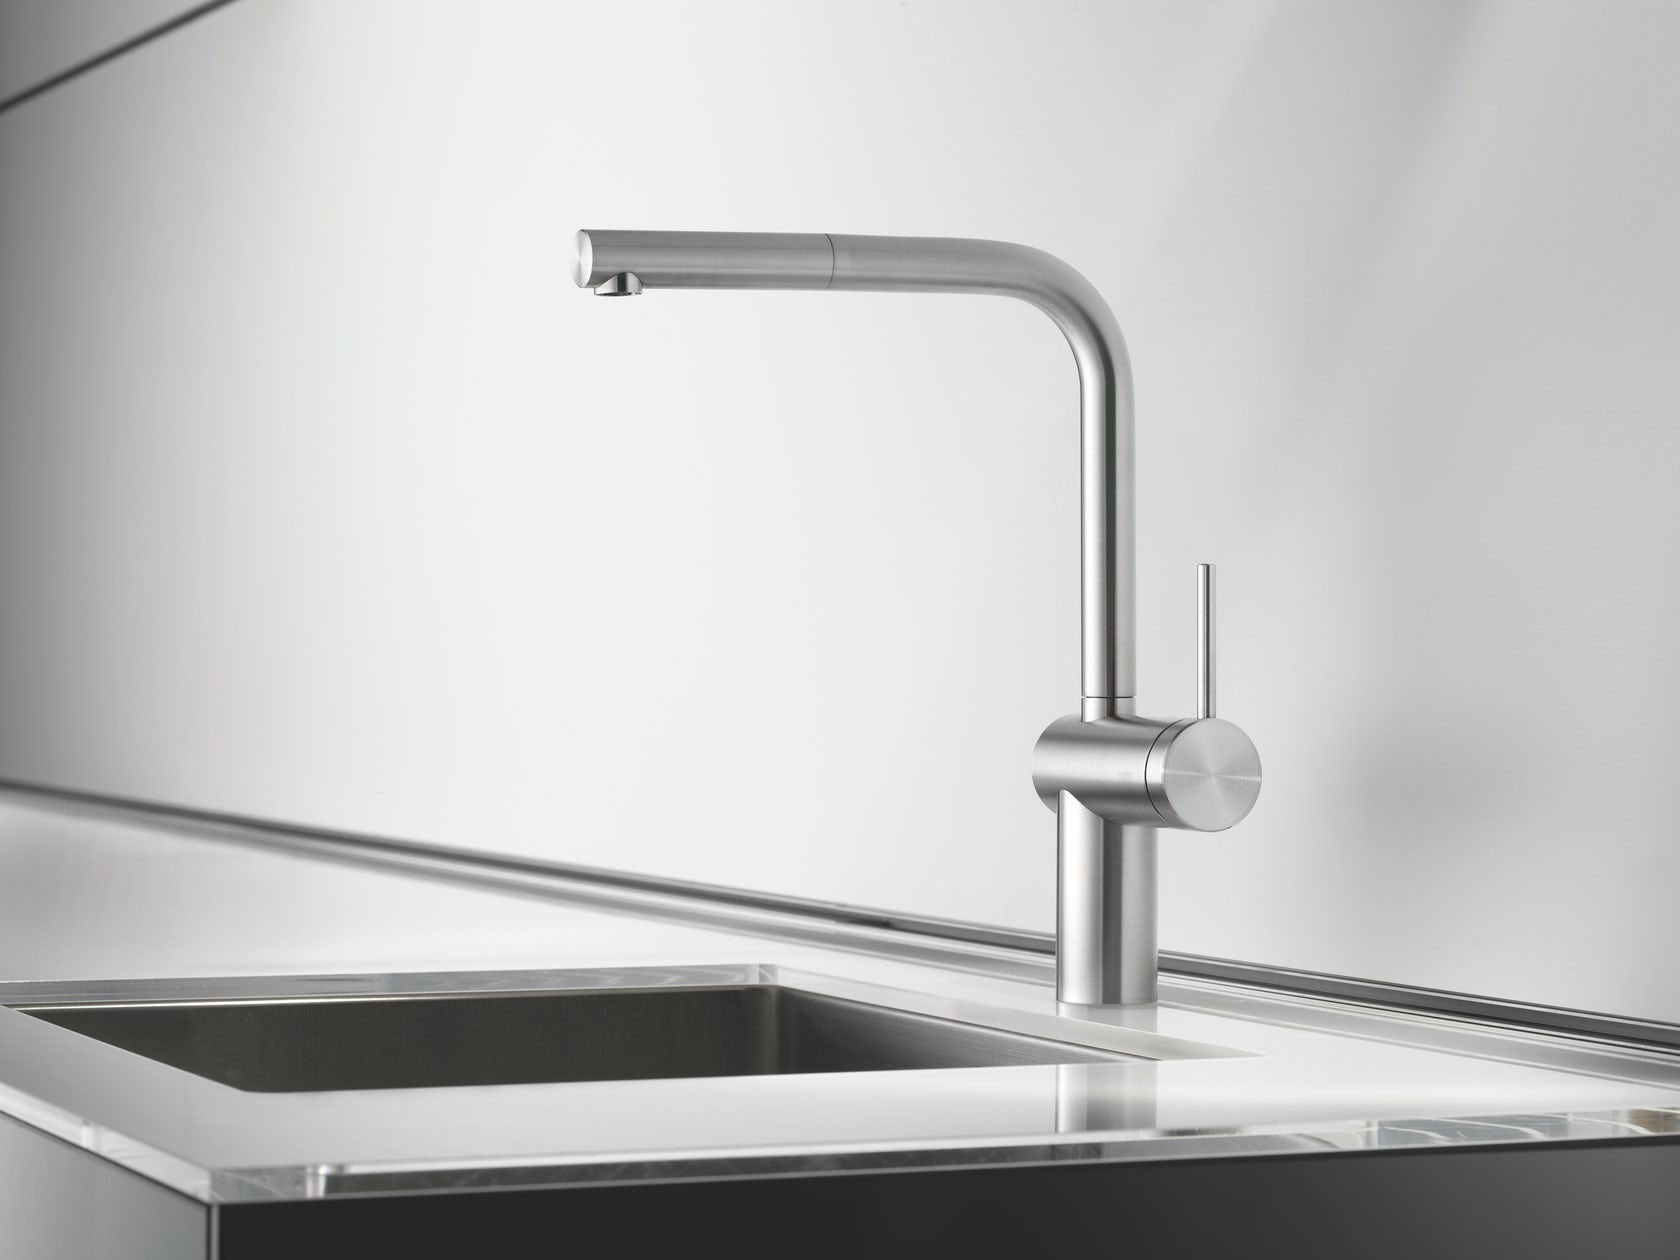 Kwc Livello Kitchen Faucet: Kwc livello by lever mixer pull out aerator.